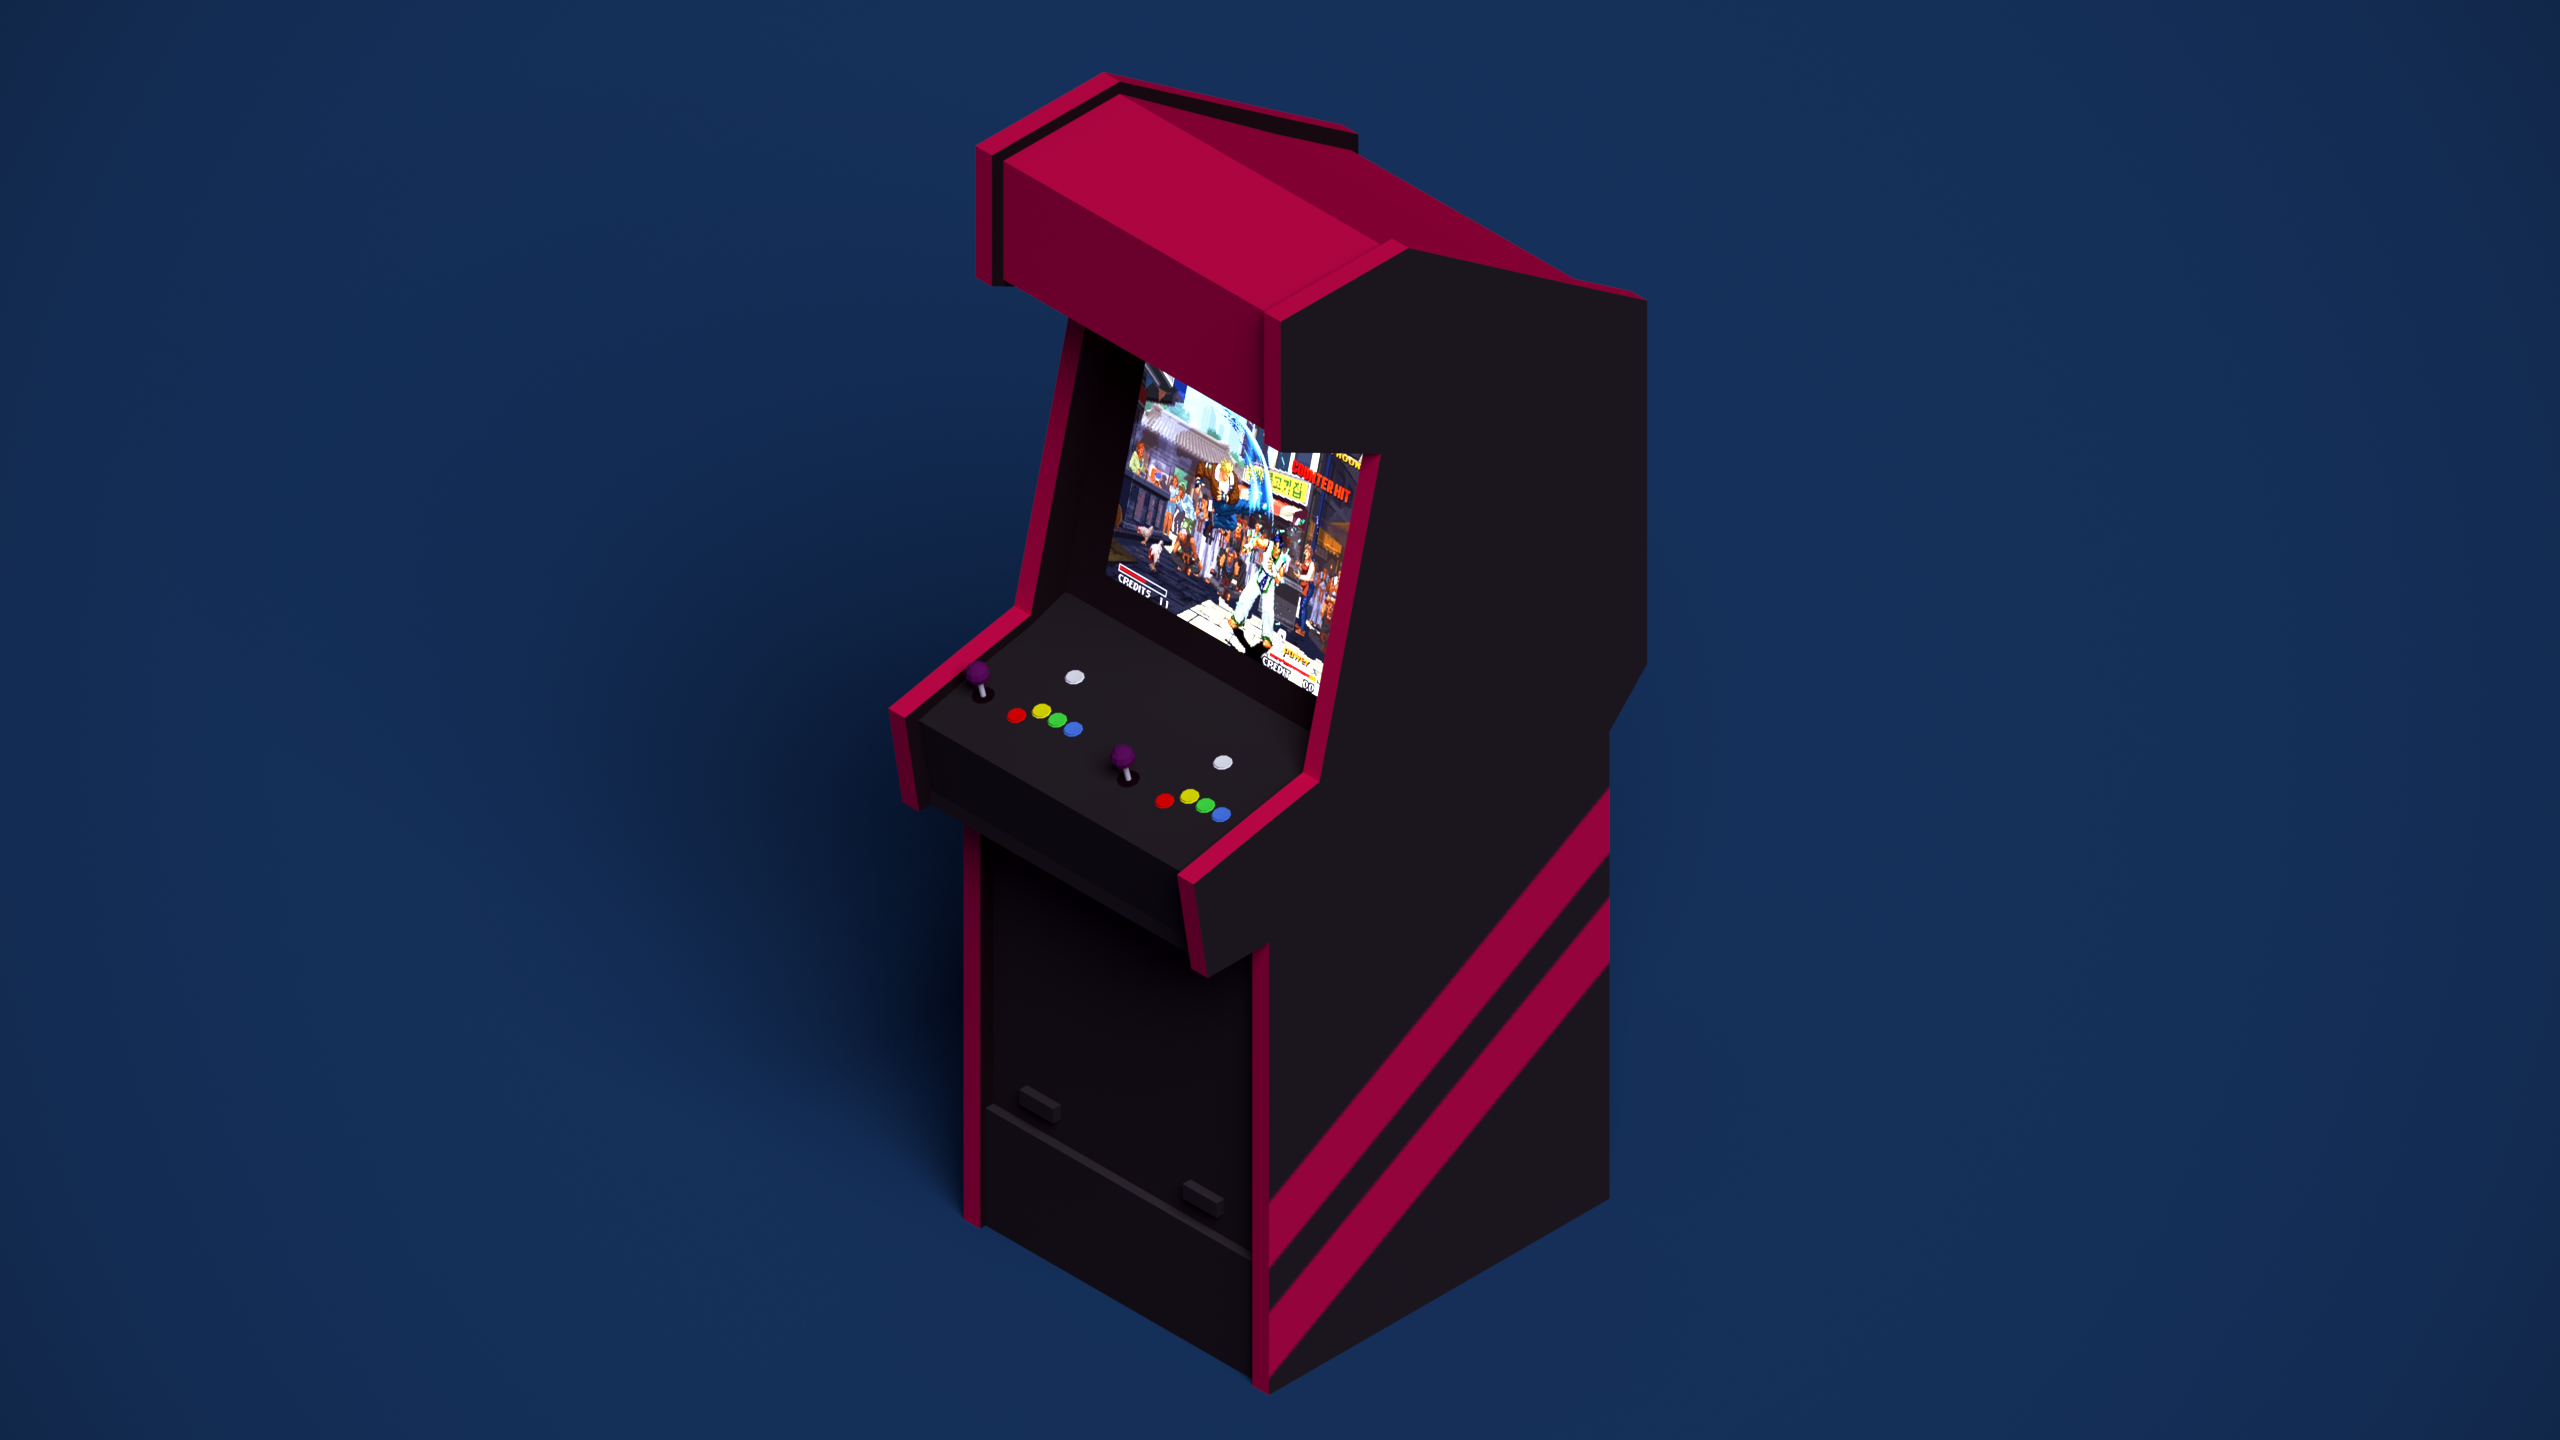 5 Arcade Hd Wallpapers Background Images Wallpaper Abyss